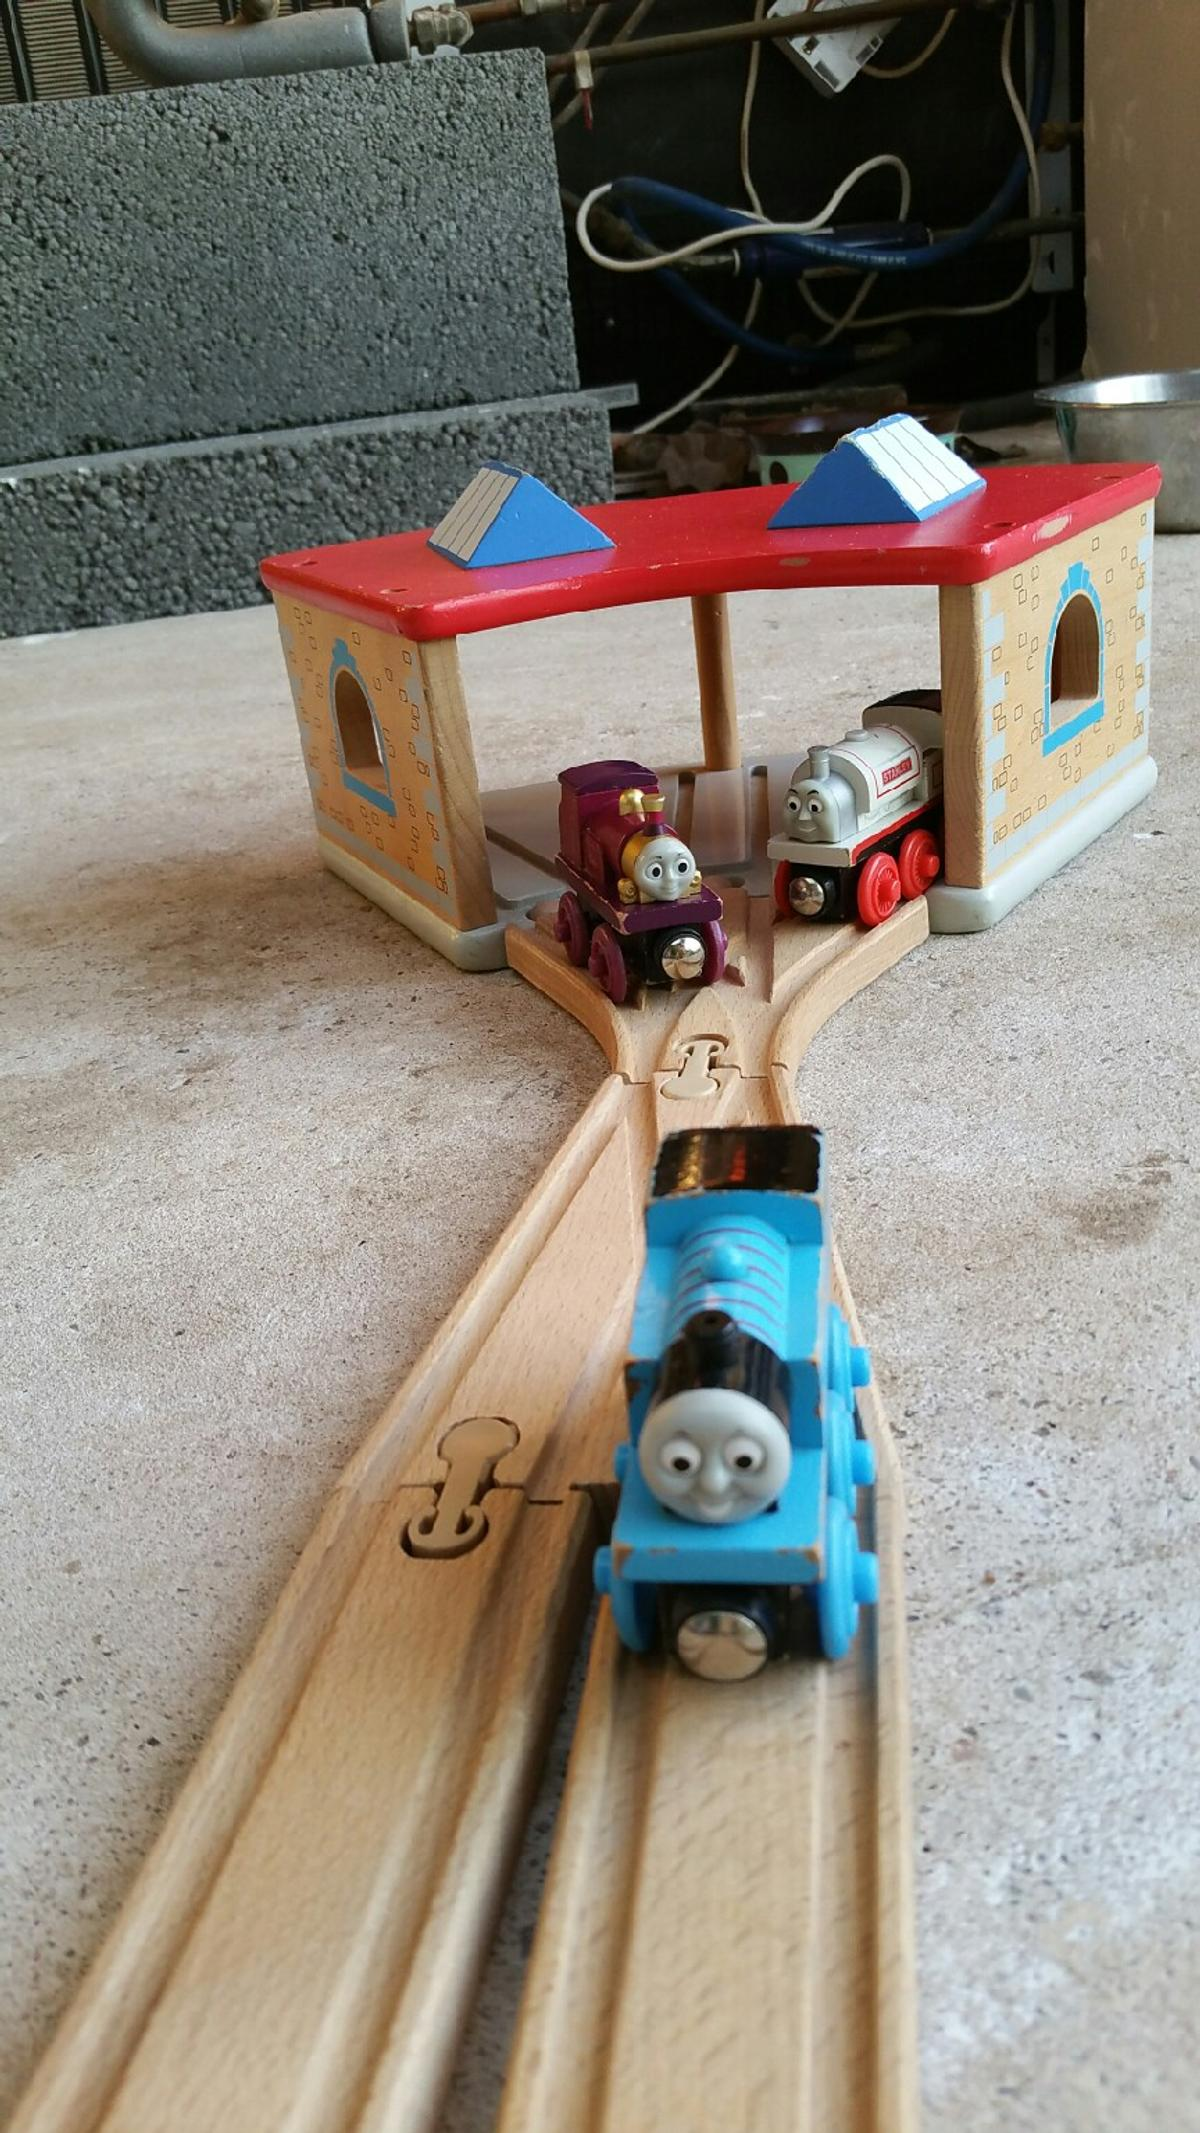 Thomas And Friends Wooden Set In B61 Bromsgrove For 1500 For Sale